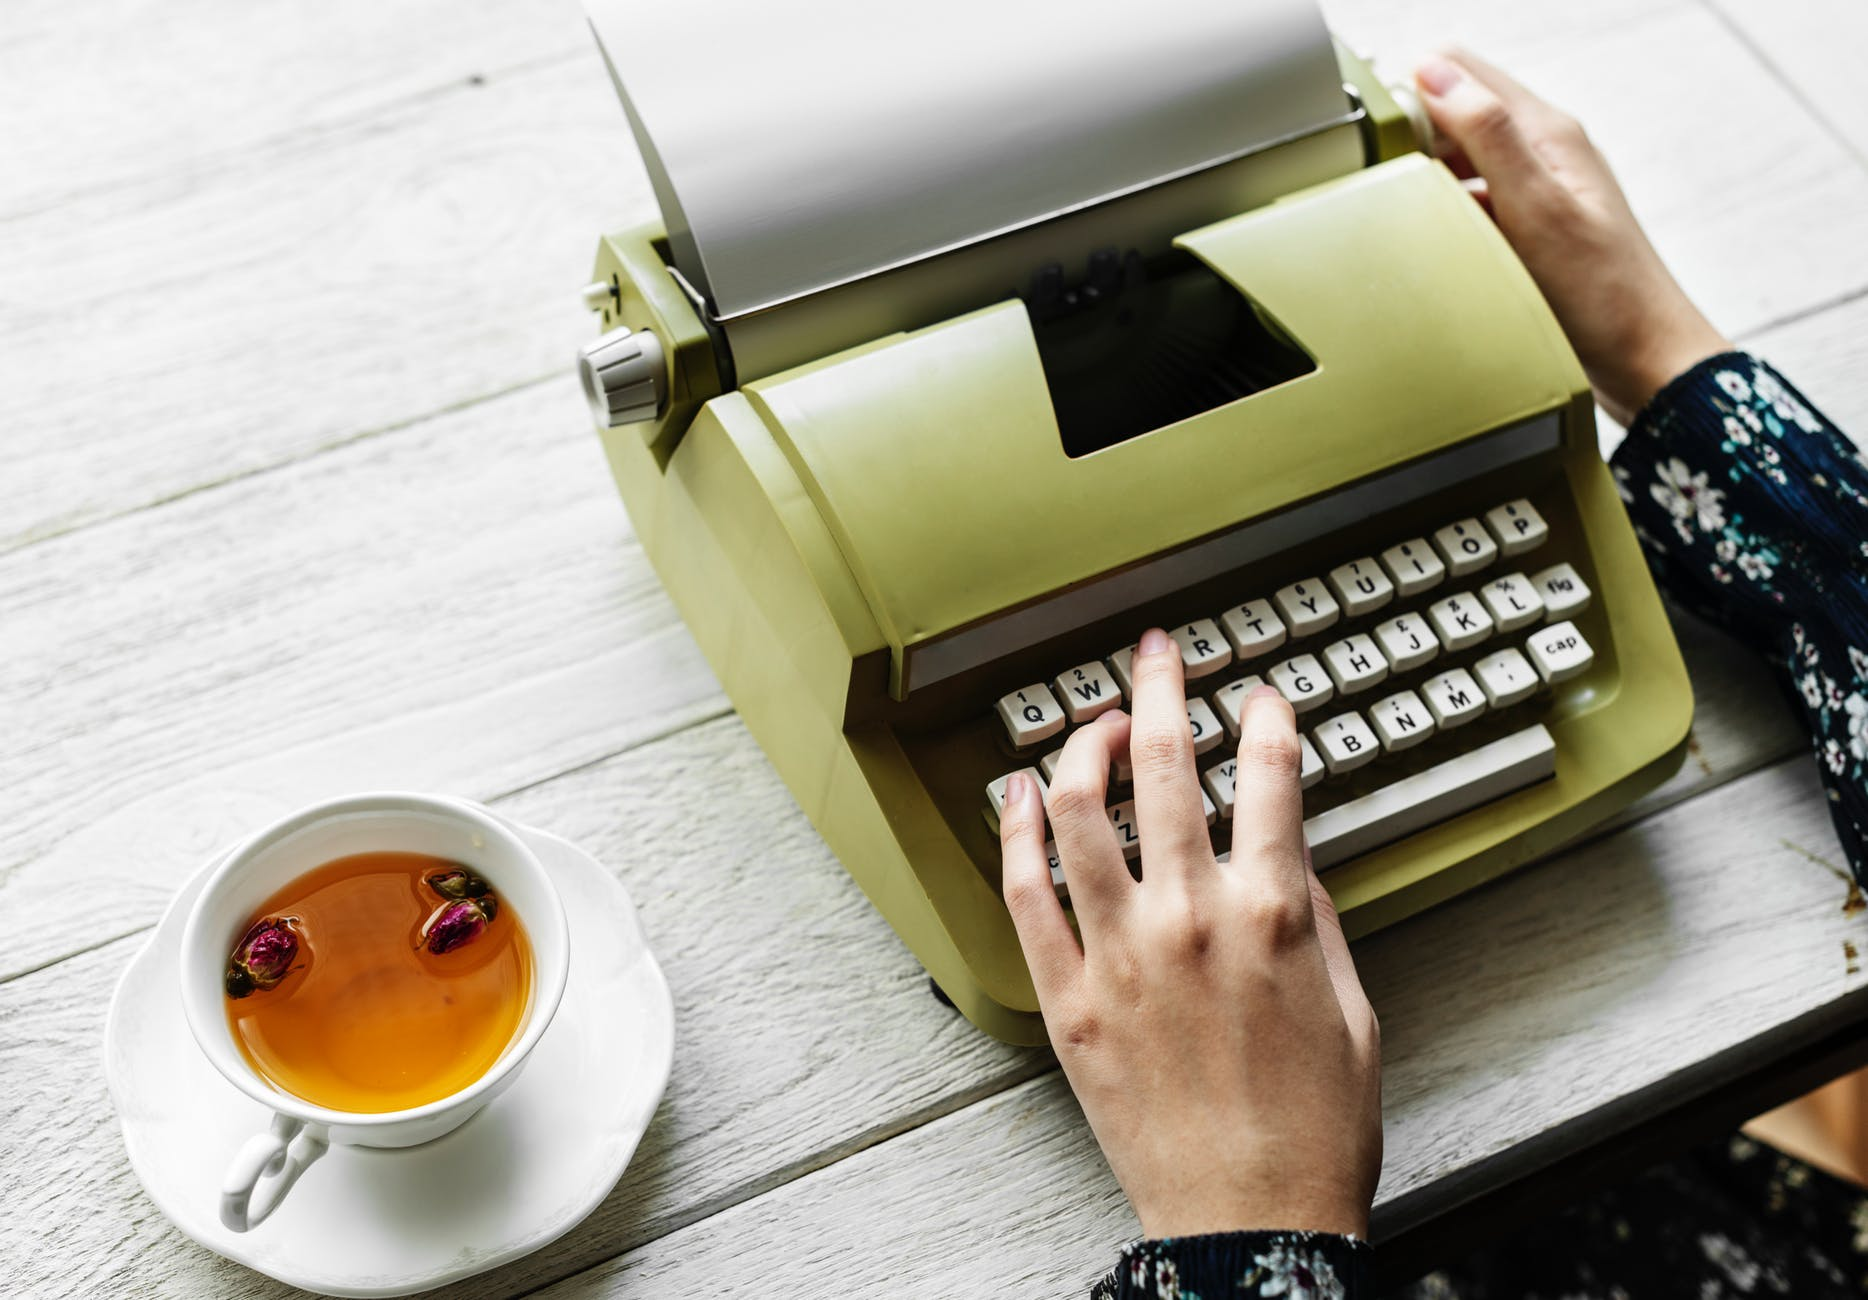 person holding type writer beside teacup and saucer on table